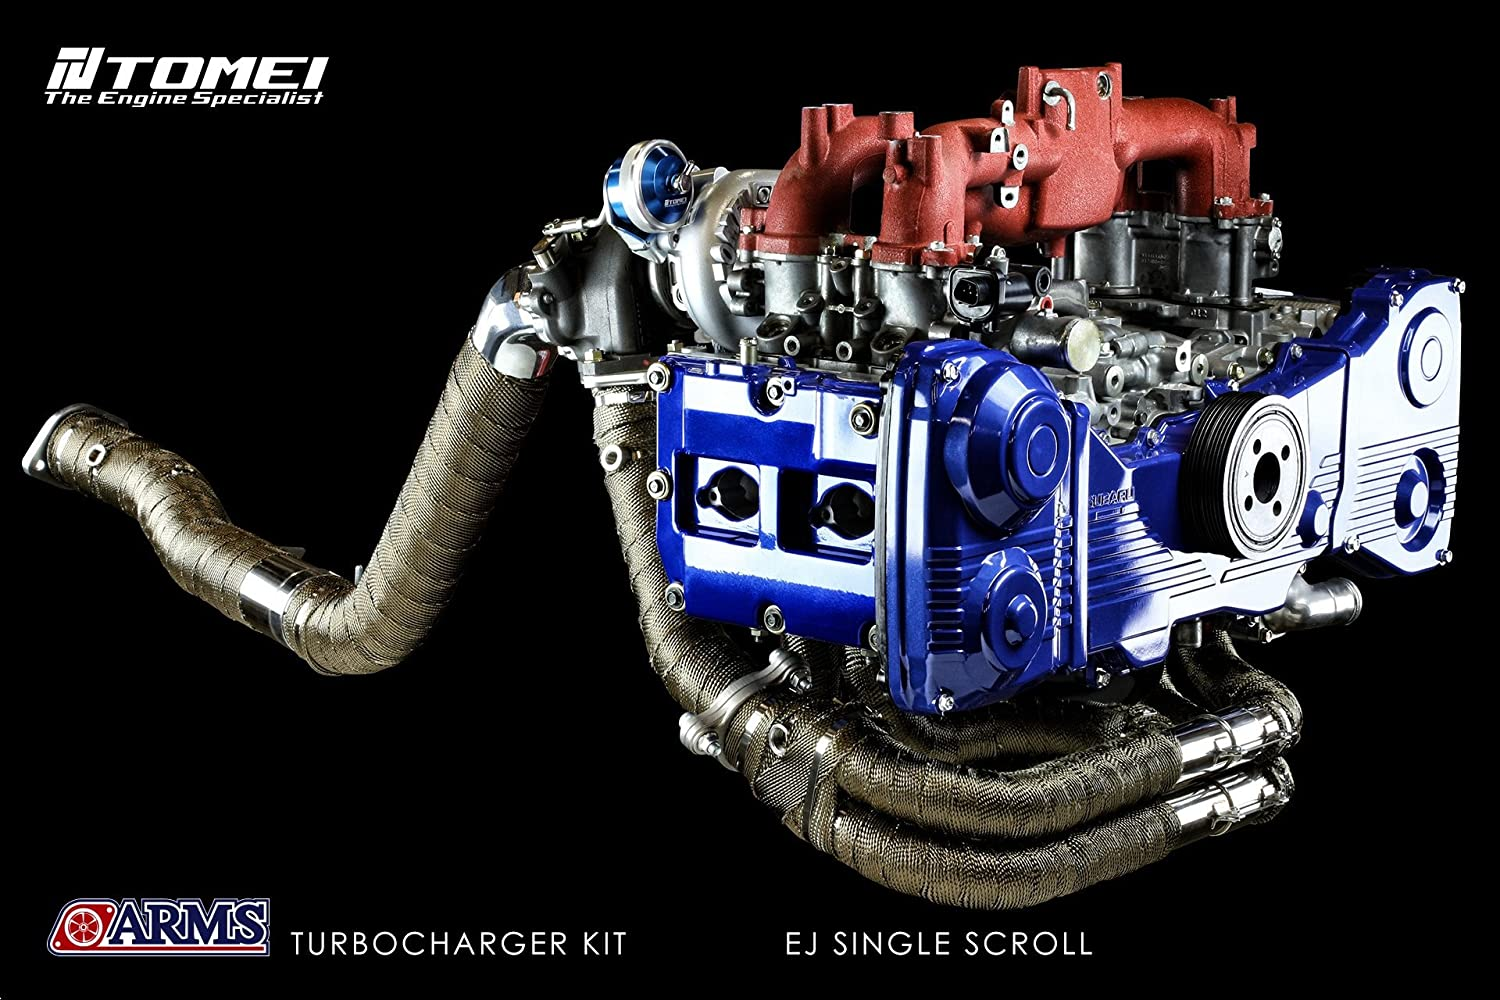 Tomei ARMS MX7960 Turbo Kit For Hyundai Genesis Coupe 2.0 Turbo Early Model G4KF